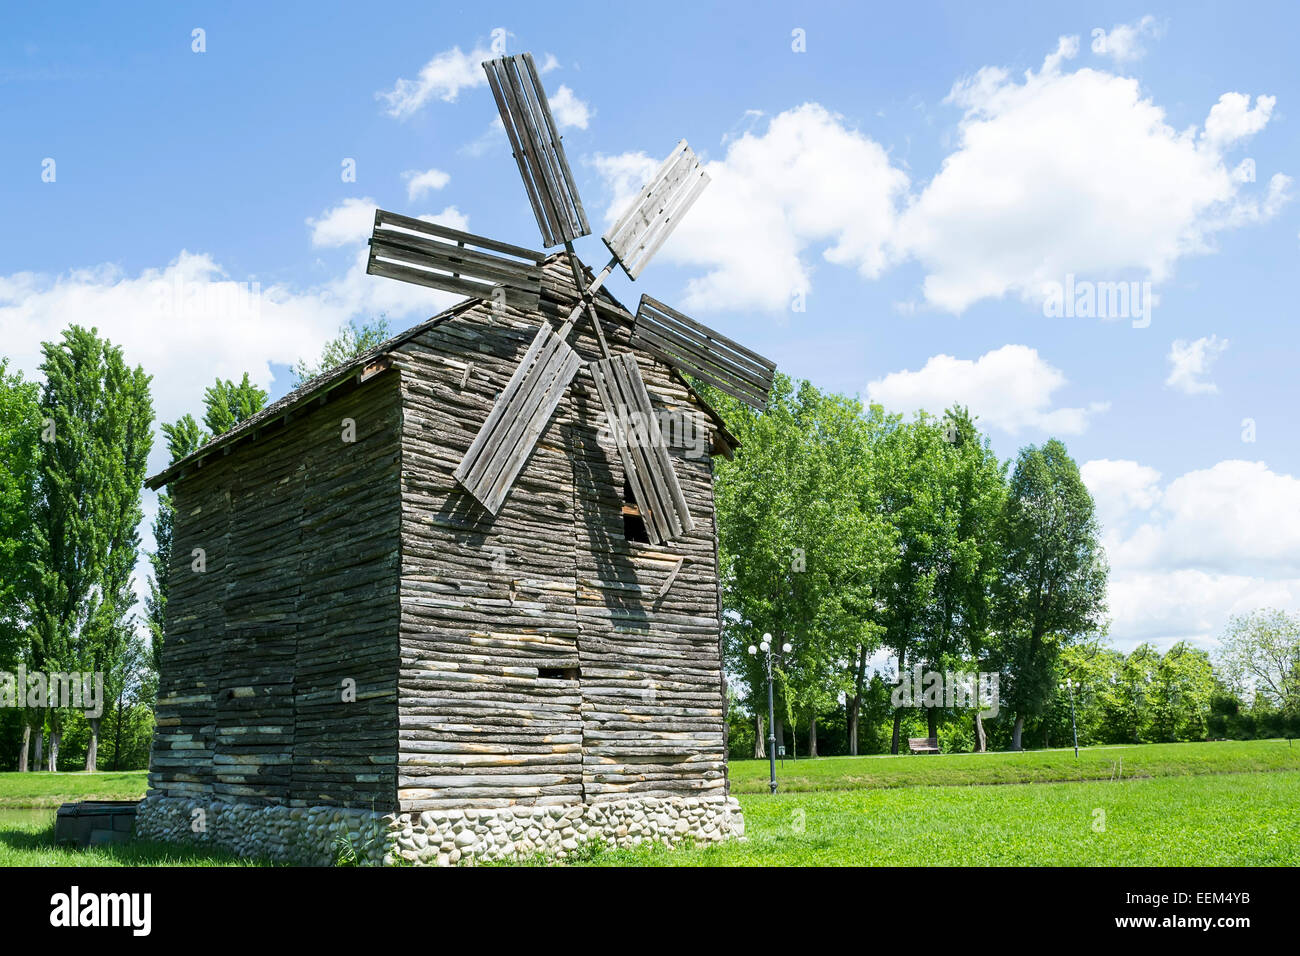 Old wooden windmill with stone foundation being on display in a park - Stock Image